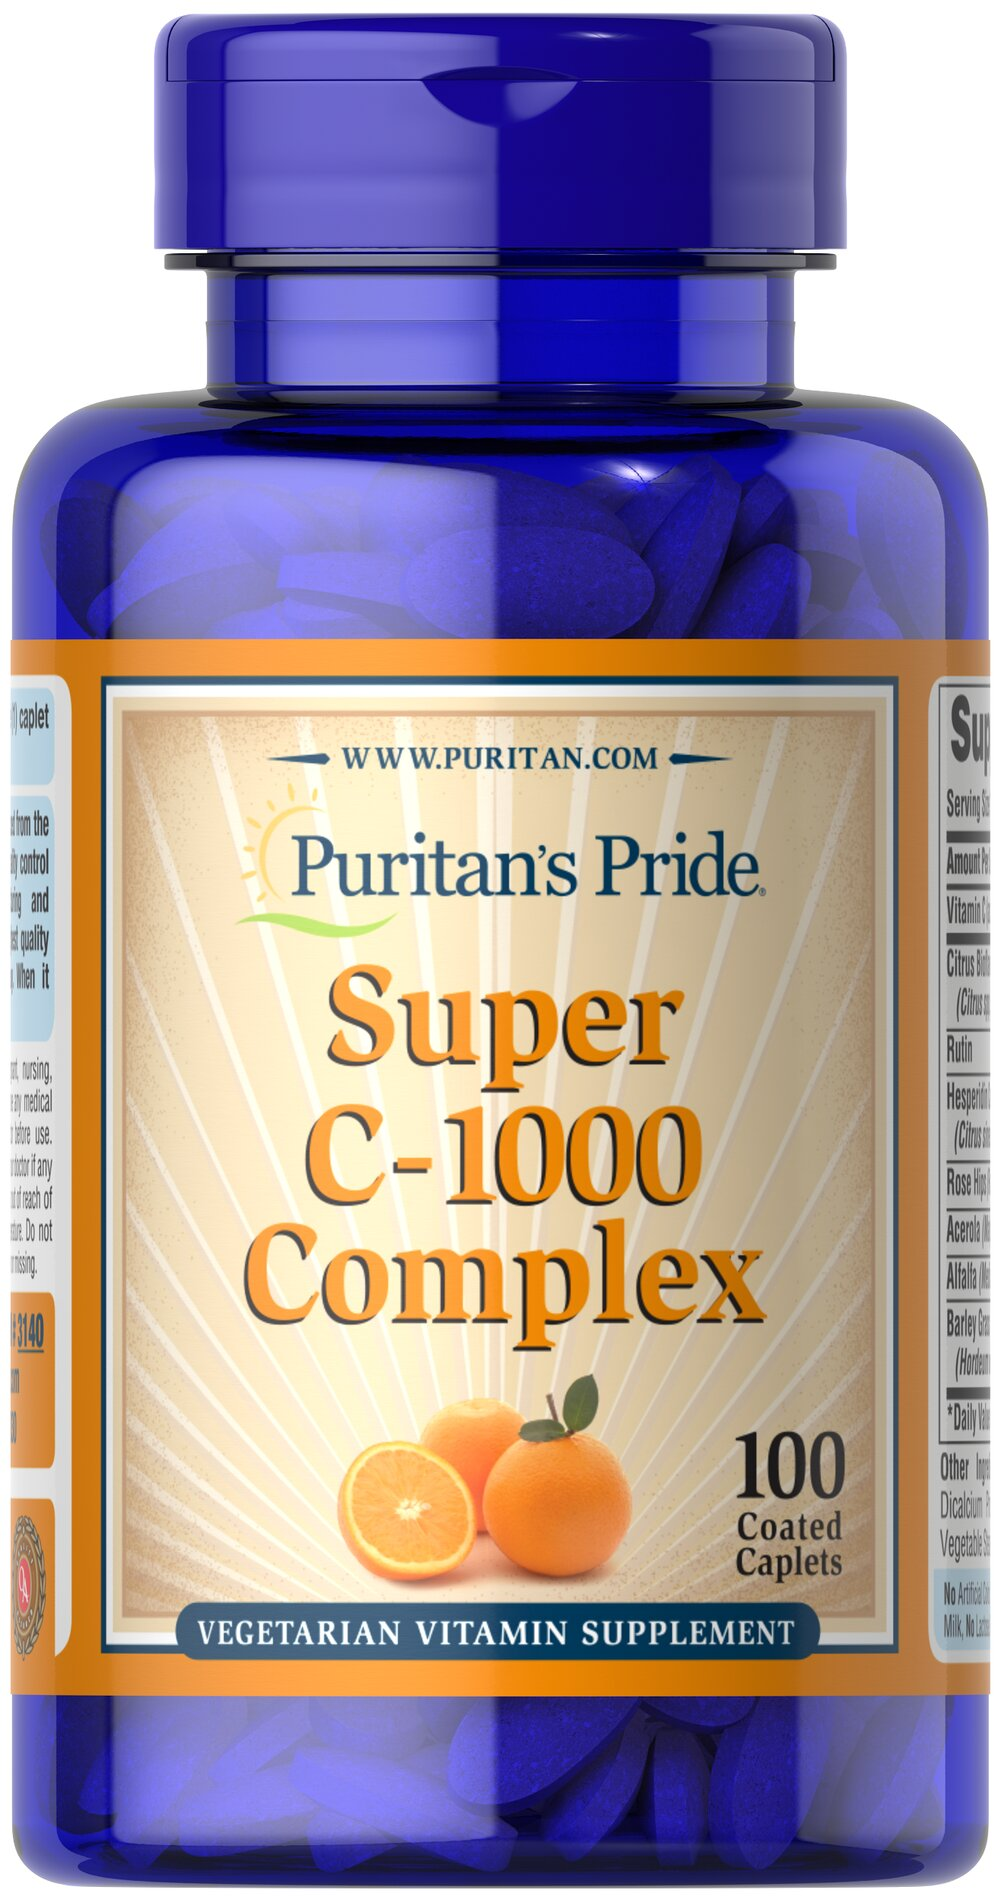 C-1000 Complex™ <p>Vitamin C  is essential to many functions in the body and is one of the leading vitamins for immune support.** Our C-complex includes potent Vitamin C as Ascorbic Acid. We also include Citrus Bioflavonoids, Rose Hips, Rutin, and Acerola.**</p><p>Offers superior antioxidant support.**</p><p>Supports healthy immune function and promotes well-being.**</p> 100 Tablets 1000 mg $15.39